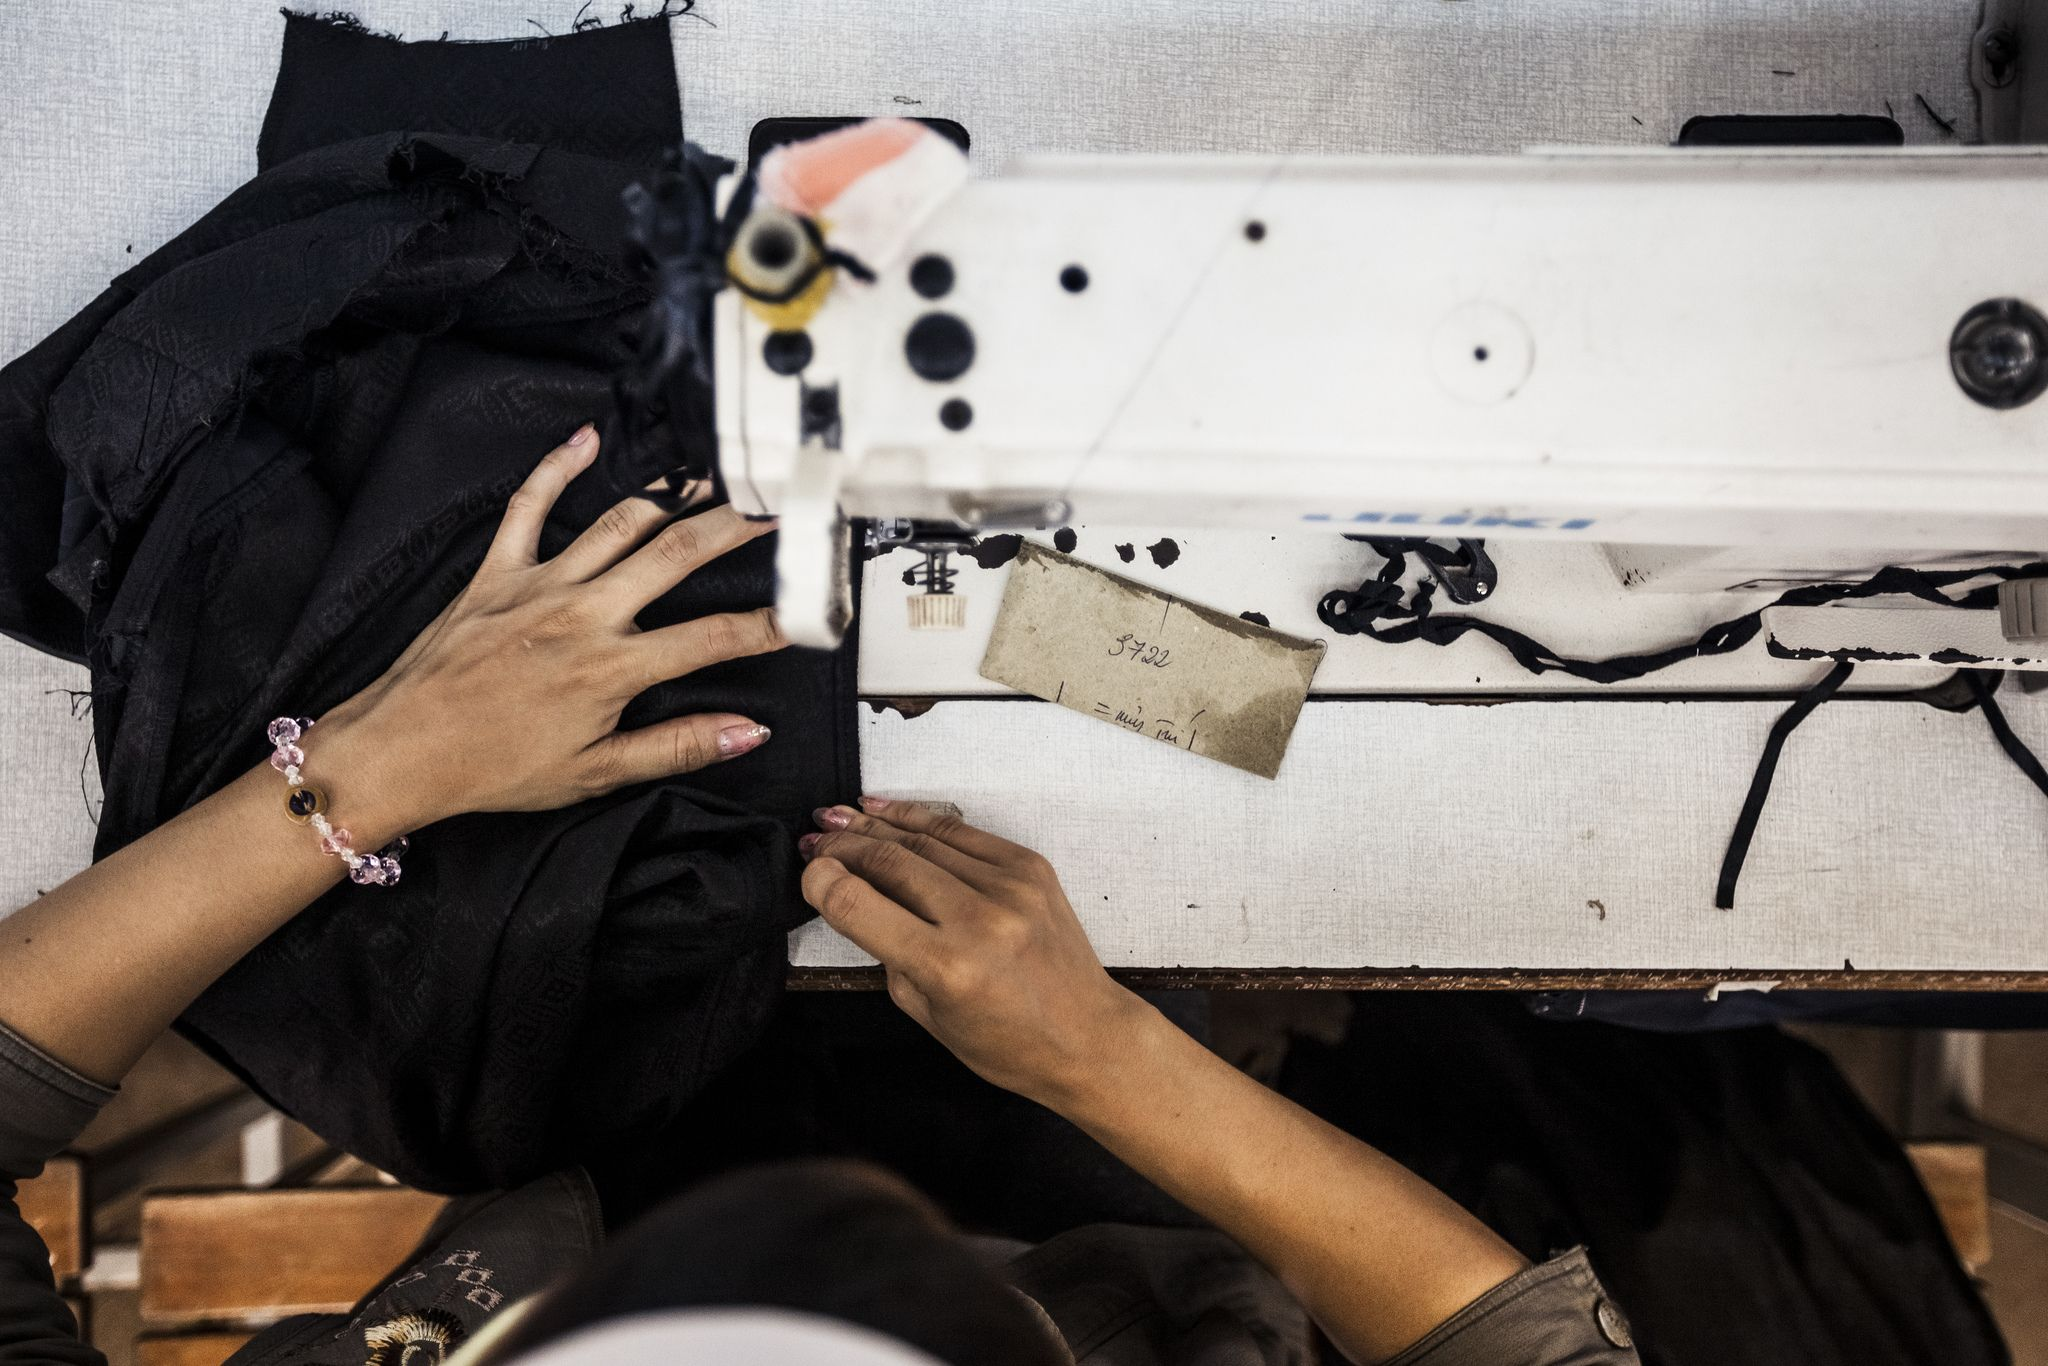 Due diligence and labour rights – migrants and refugees in the textile sector